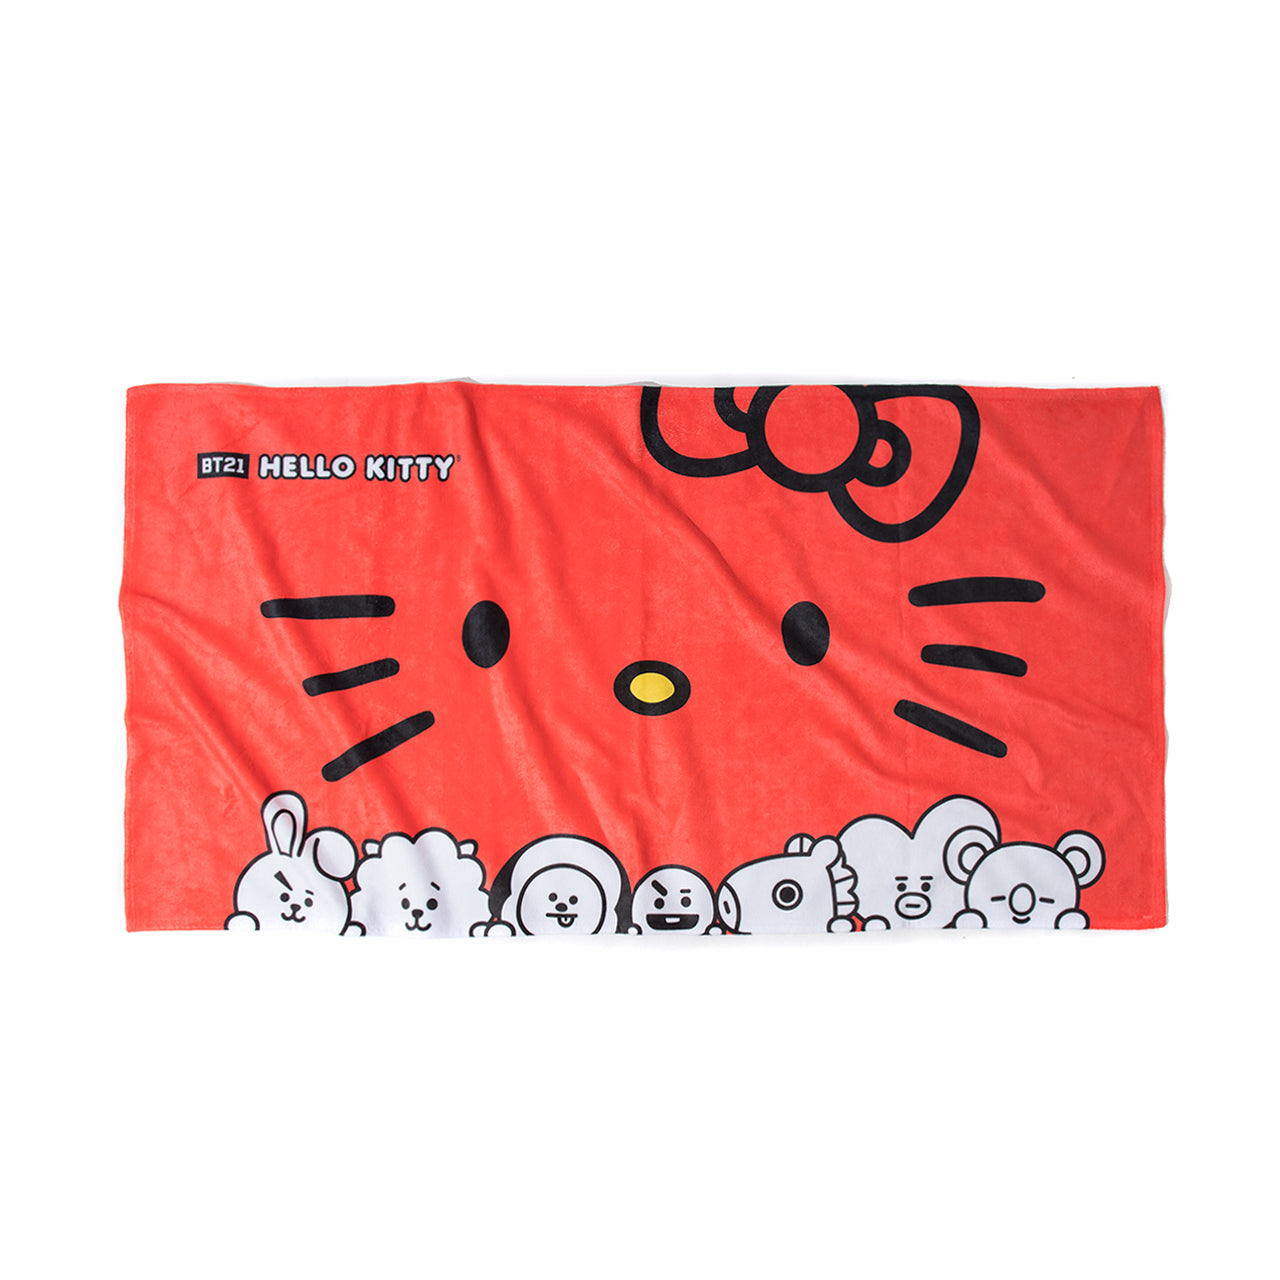 Bowtie Red Beach Towel